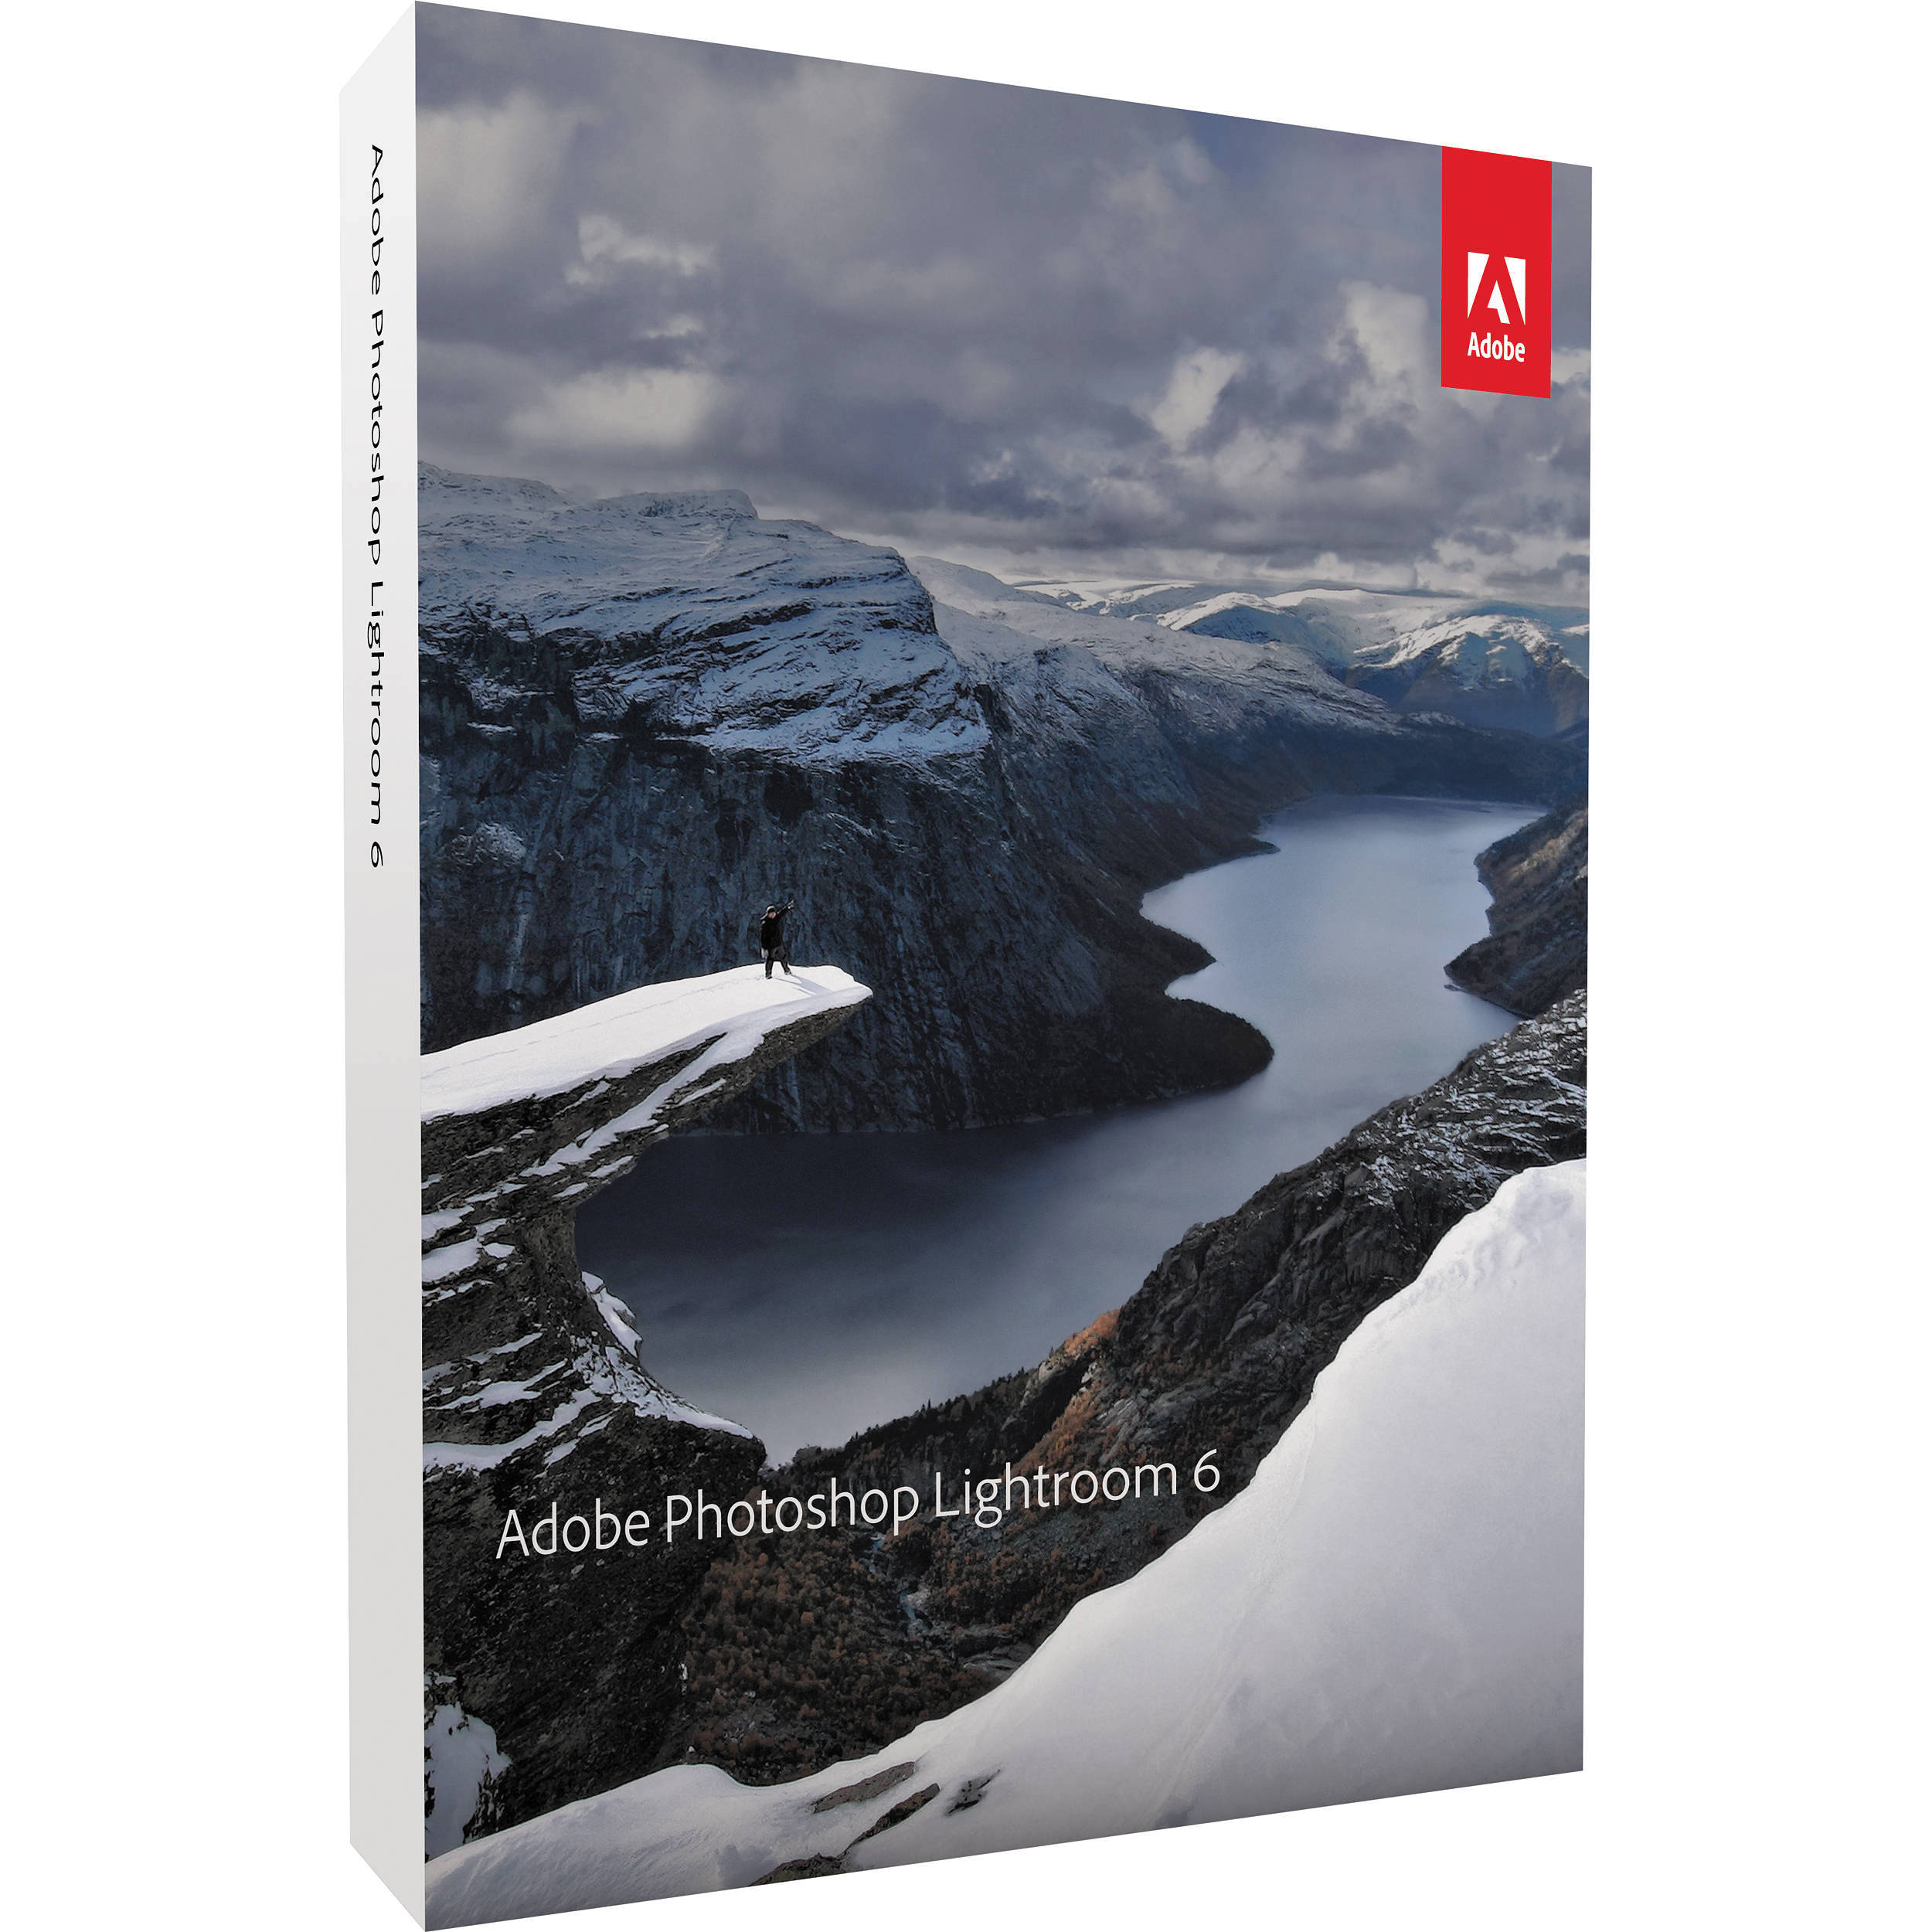 adobe lightroom cc download